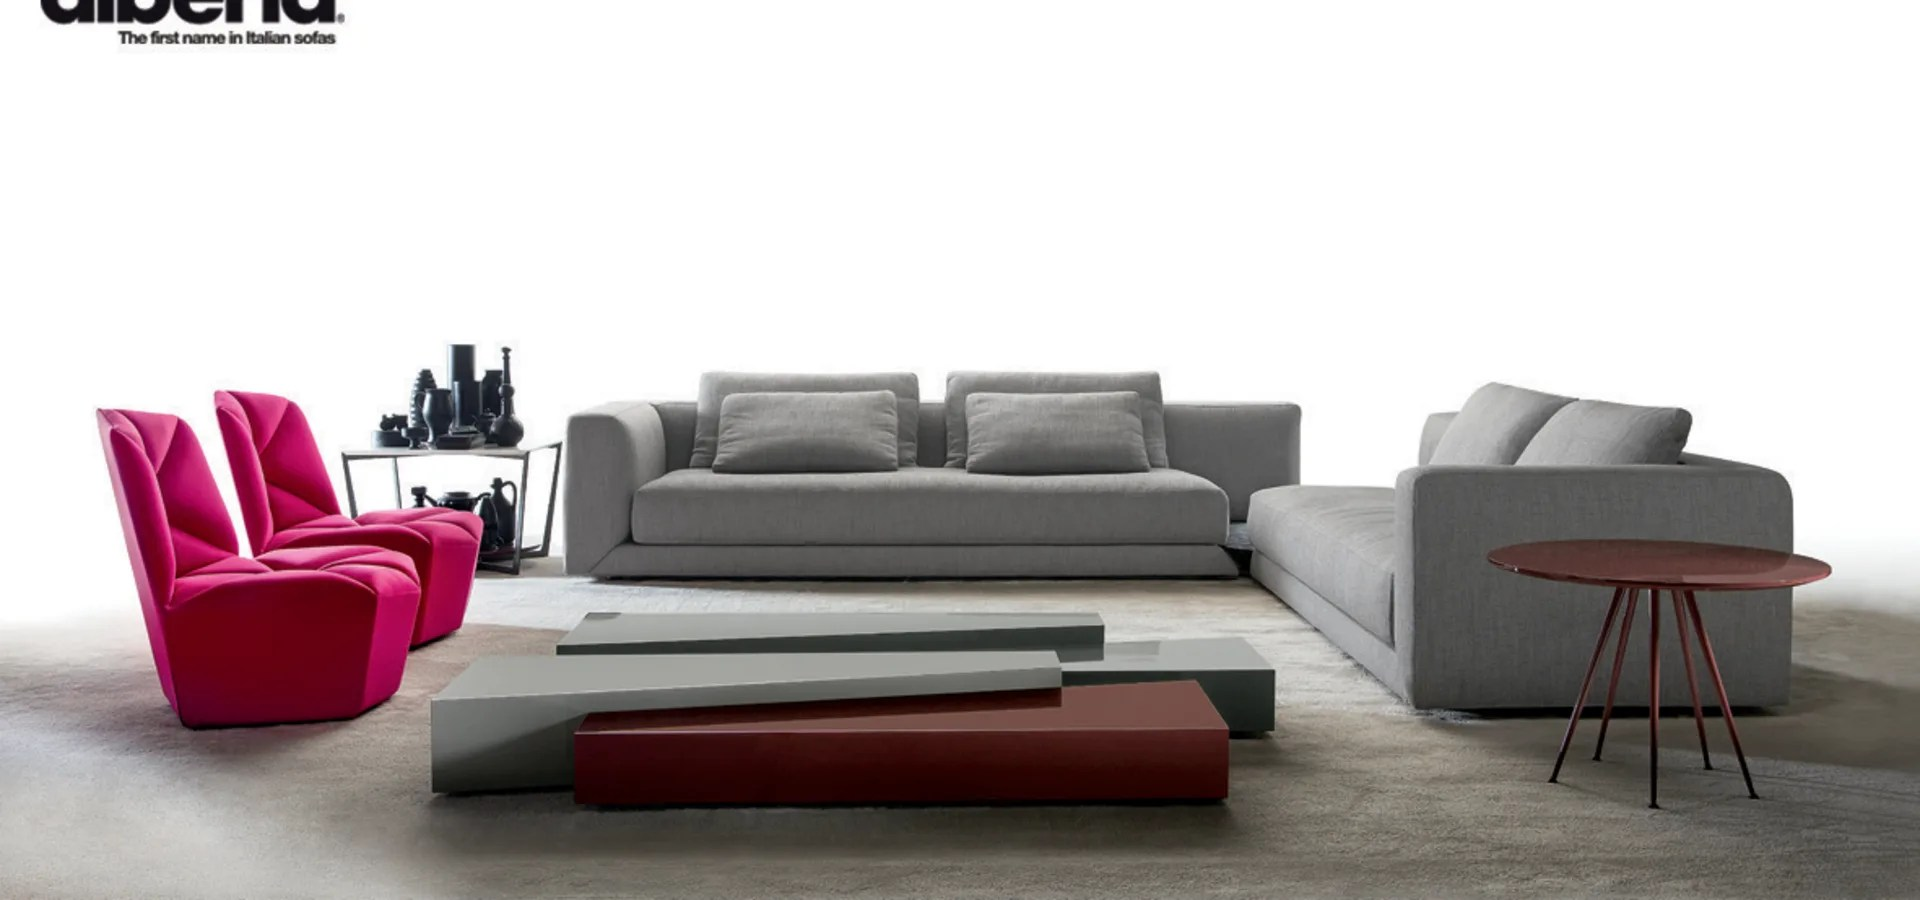 kirby sofa review brompton next reviews controluce italian home fashion by alberta pacific